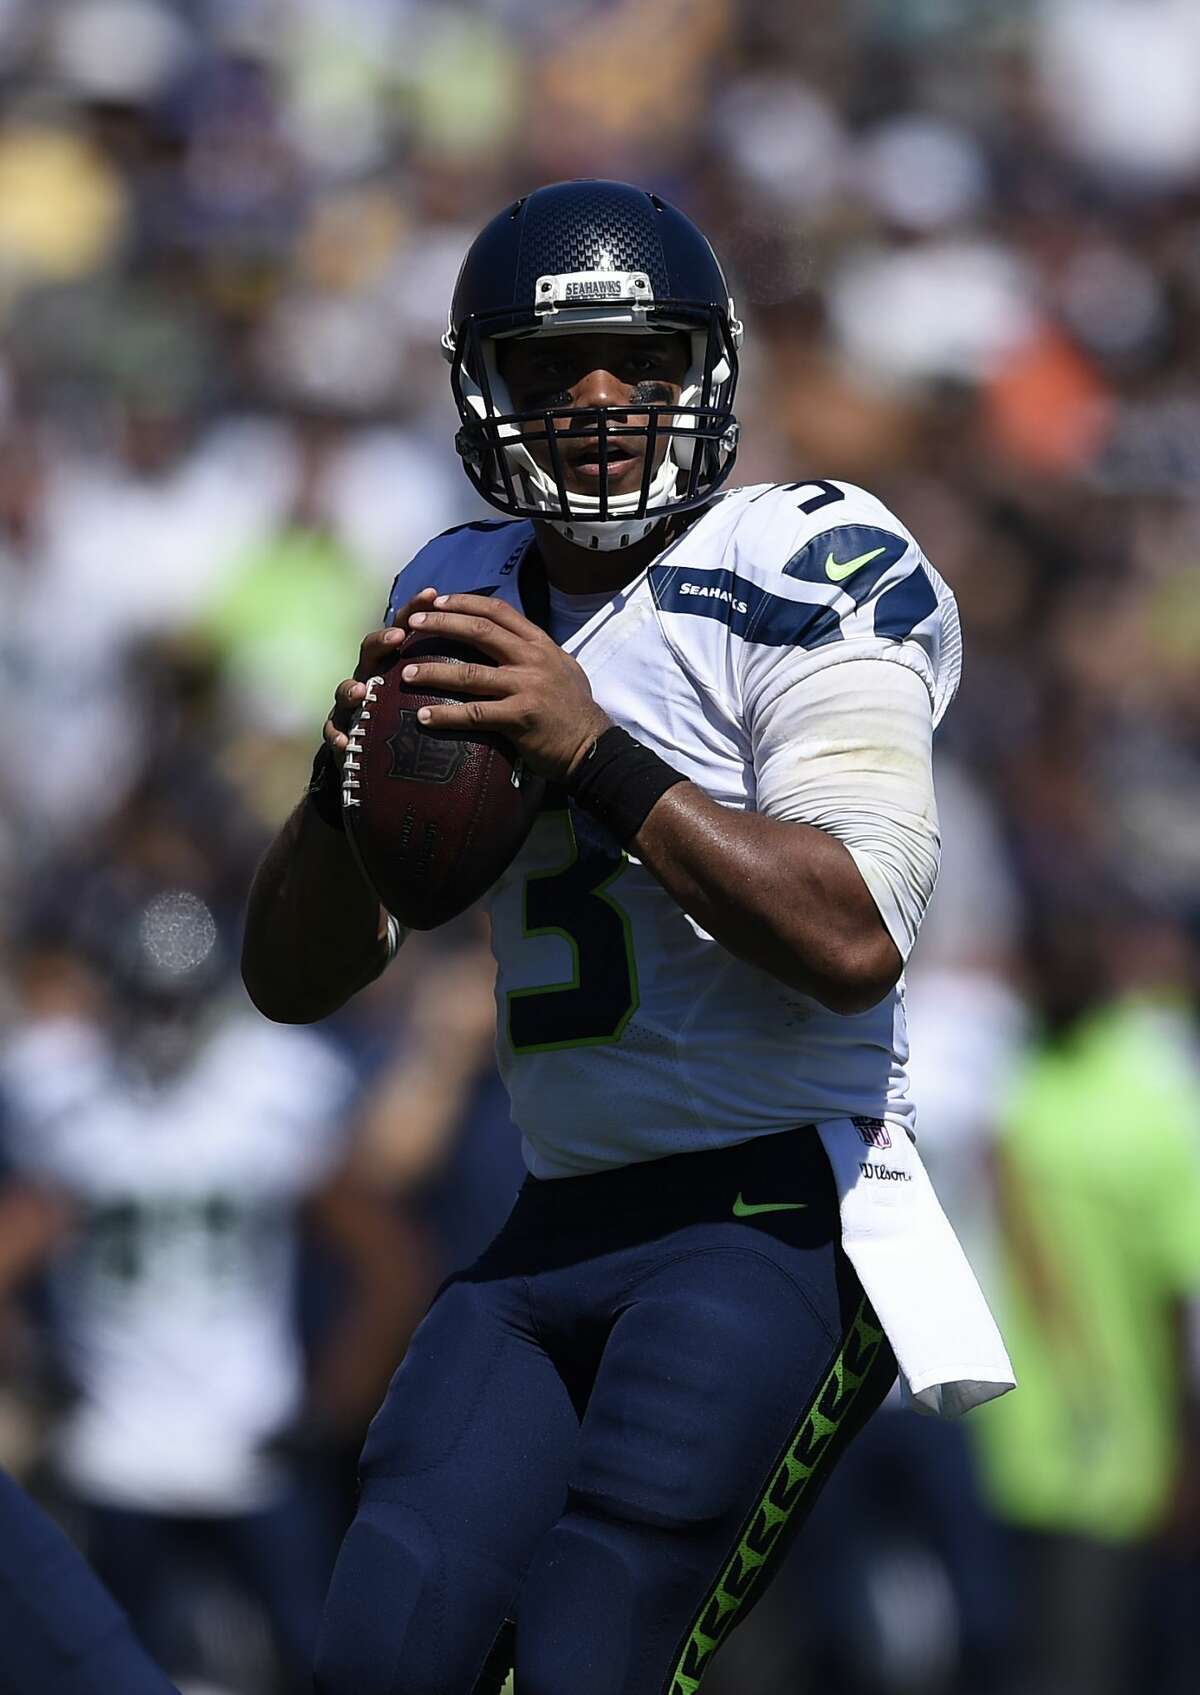 Seattle Seahawks quarterback Russell Wilson gets set to pass during the first half an NFL football game against the Los Angeles Rams at the Los Angeles Memorial Coliseum, Sunday, Sept. 18, 2016, in Los Angeles. (AP Photo/Kelvin Kuo)